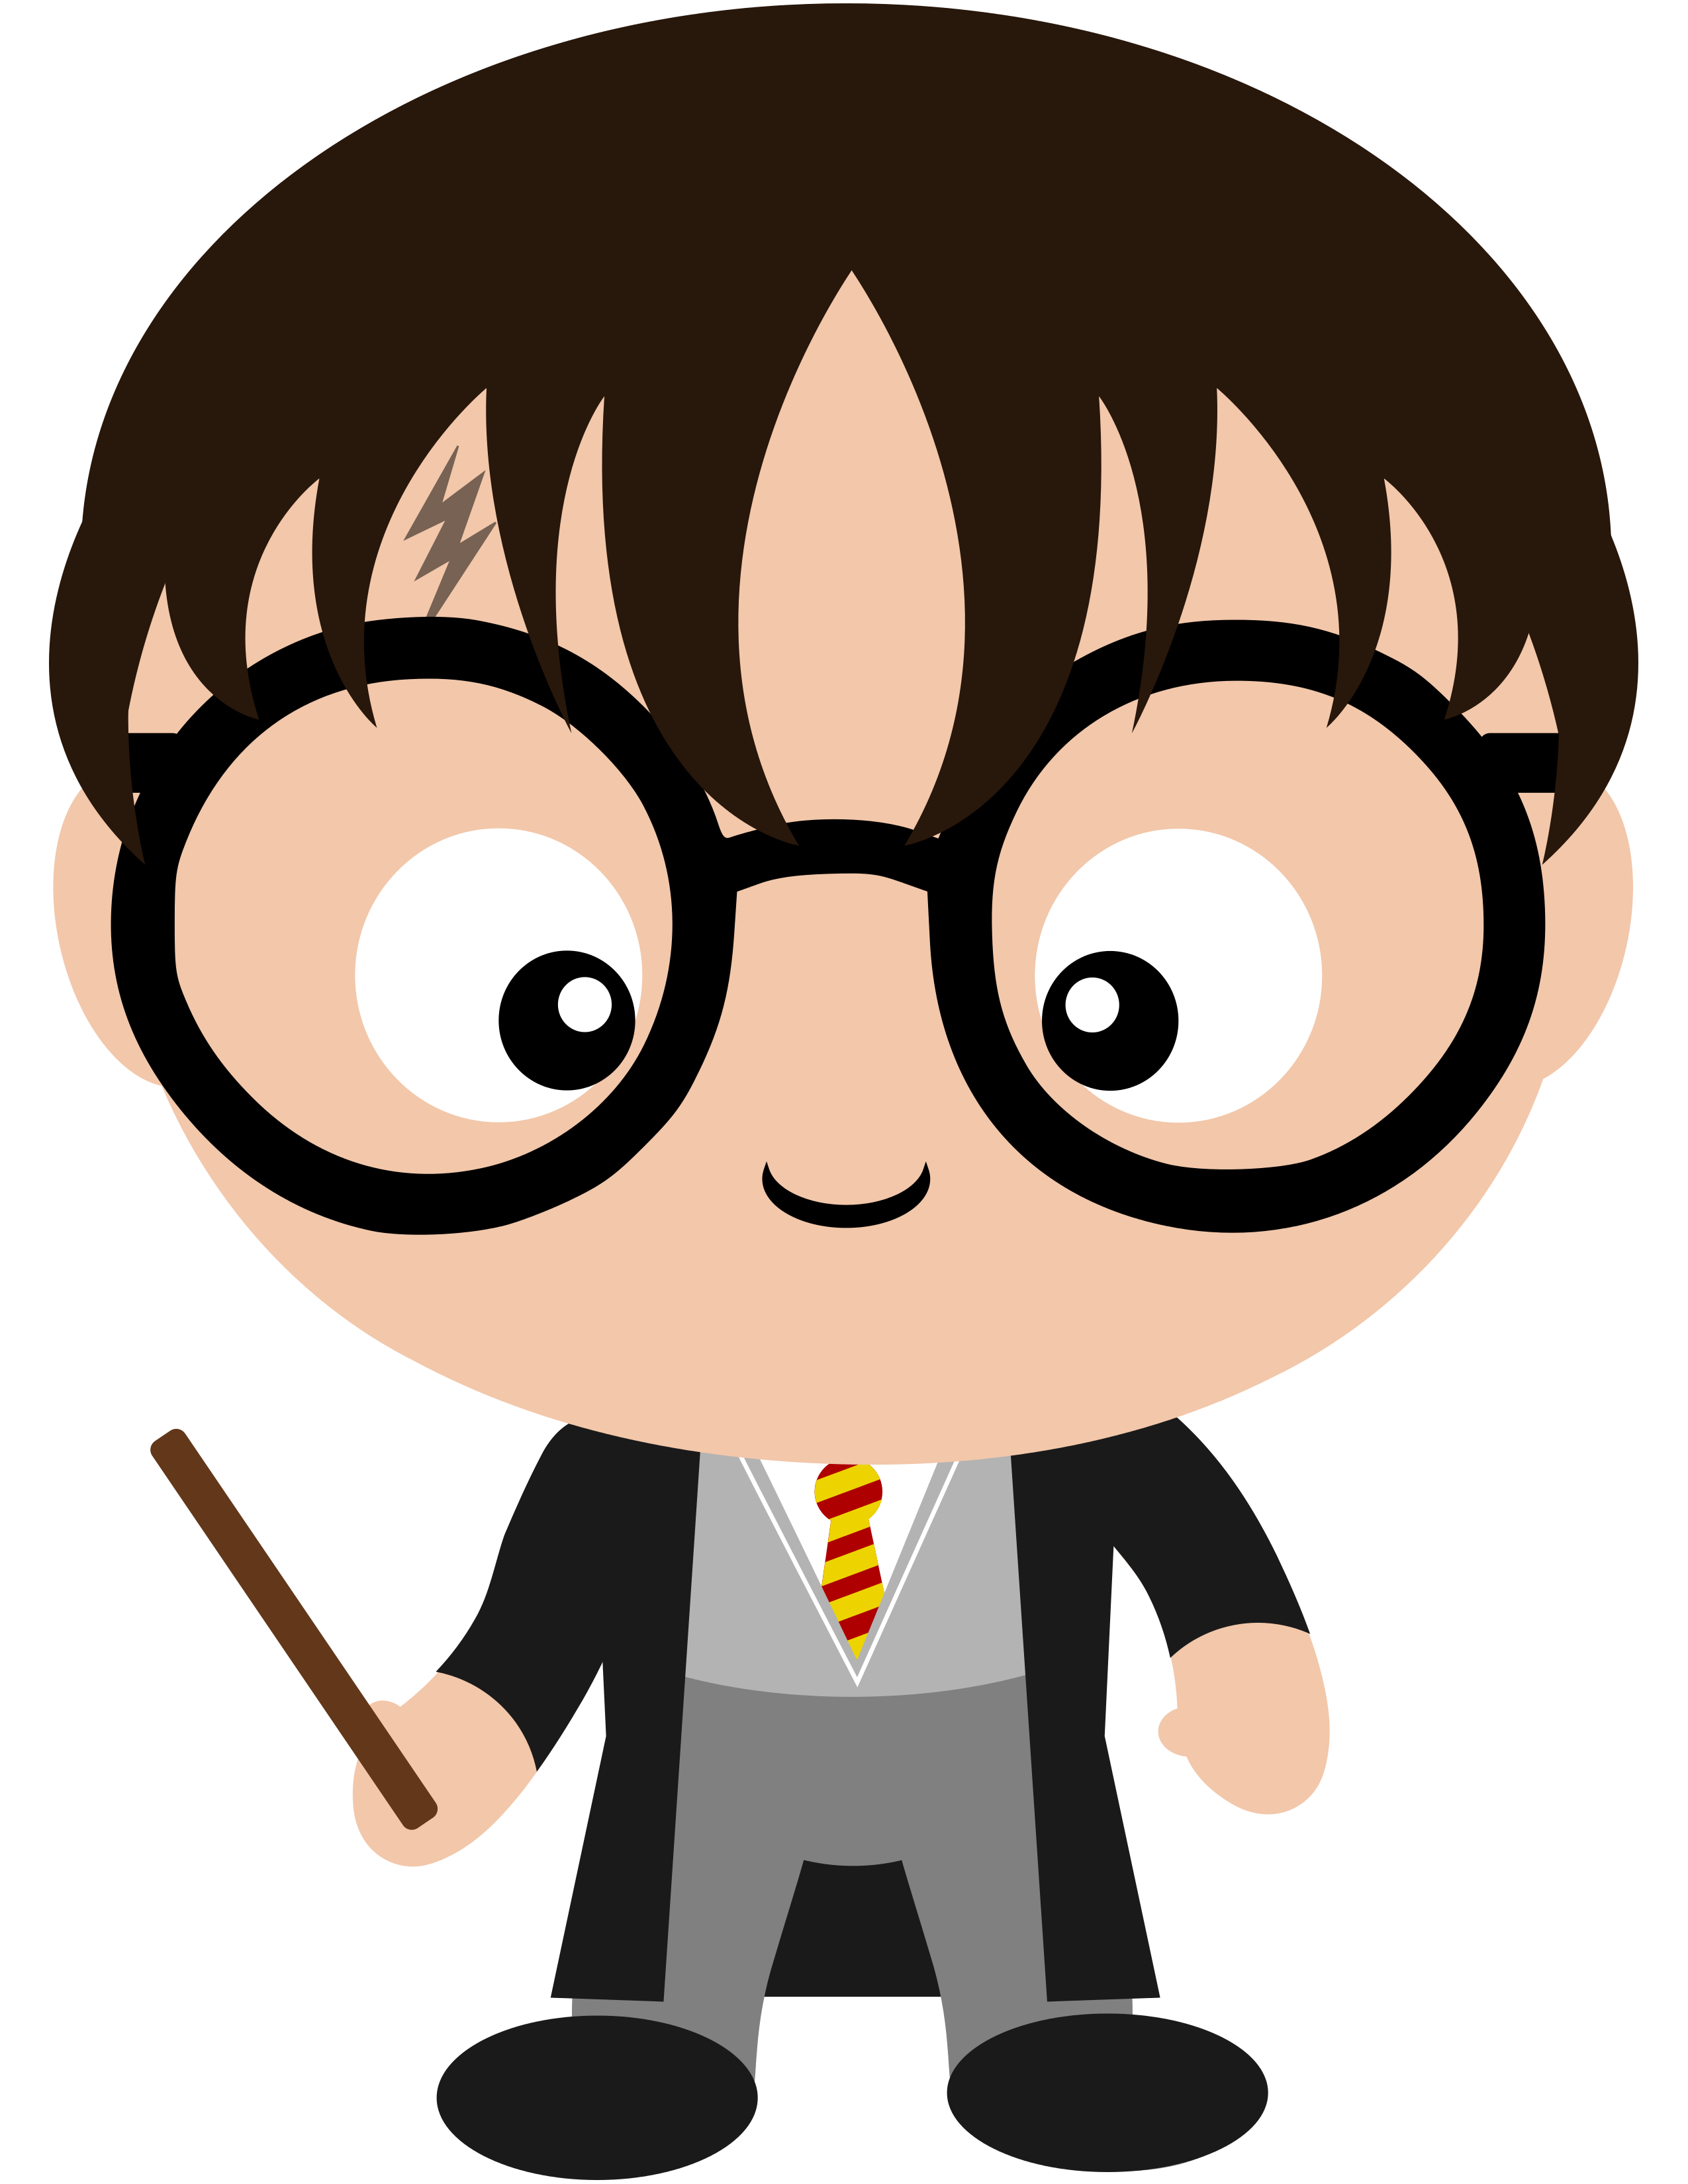 Book characters clipart clip art free library The one and only, Harry Potter. The world will ever be the same ... clip art free library